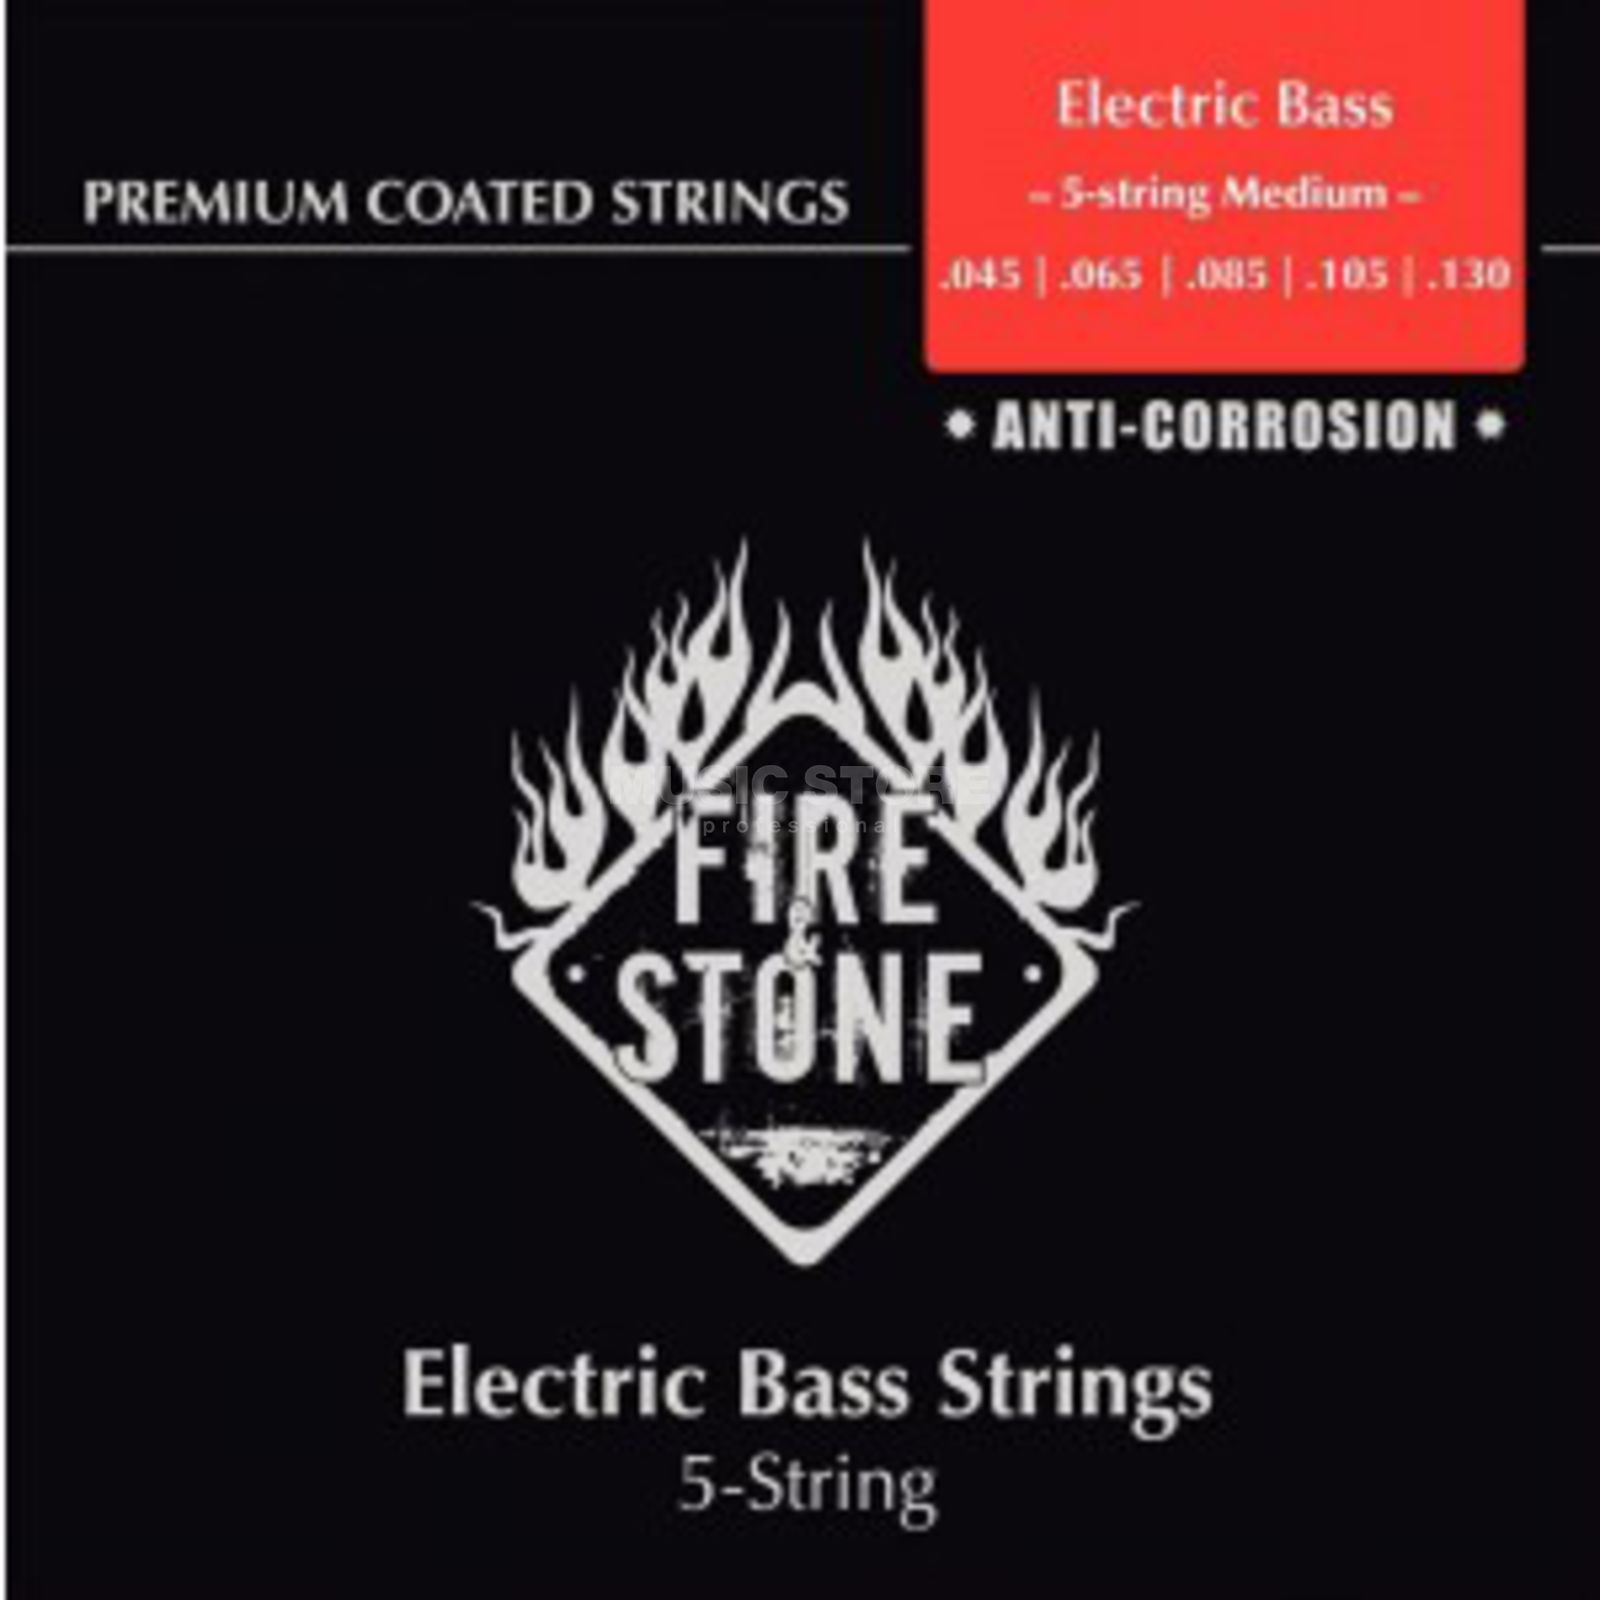 Fire & Stone Bass Strings 45-130 Coated Medium Изображение товара